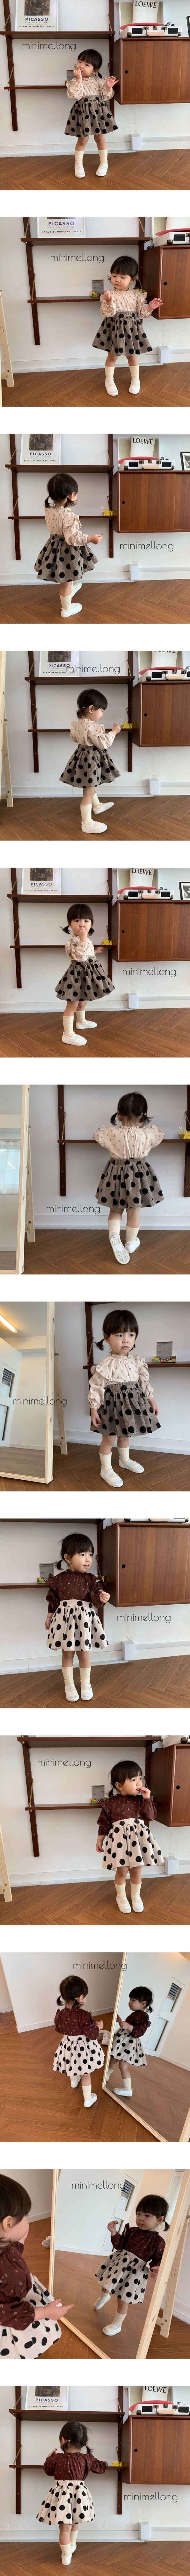 MINIMELLONG - Korean Children Fashion - #Kfashion4kids - Corduroy Dot Skirt